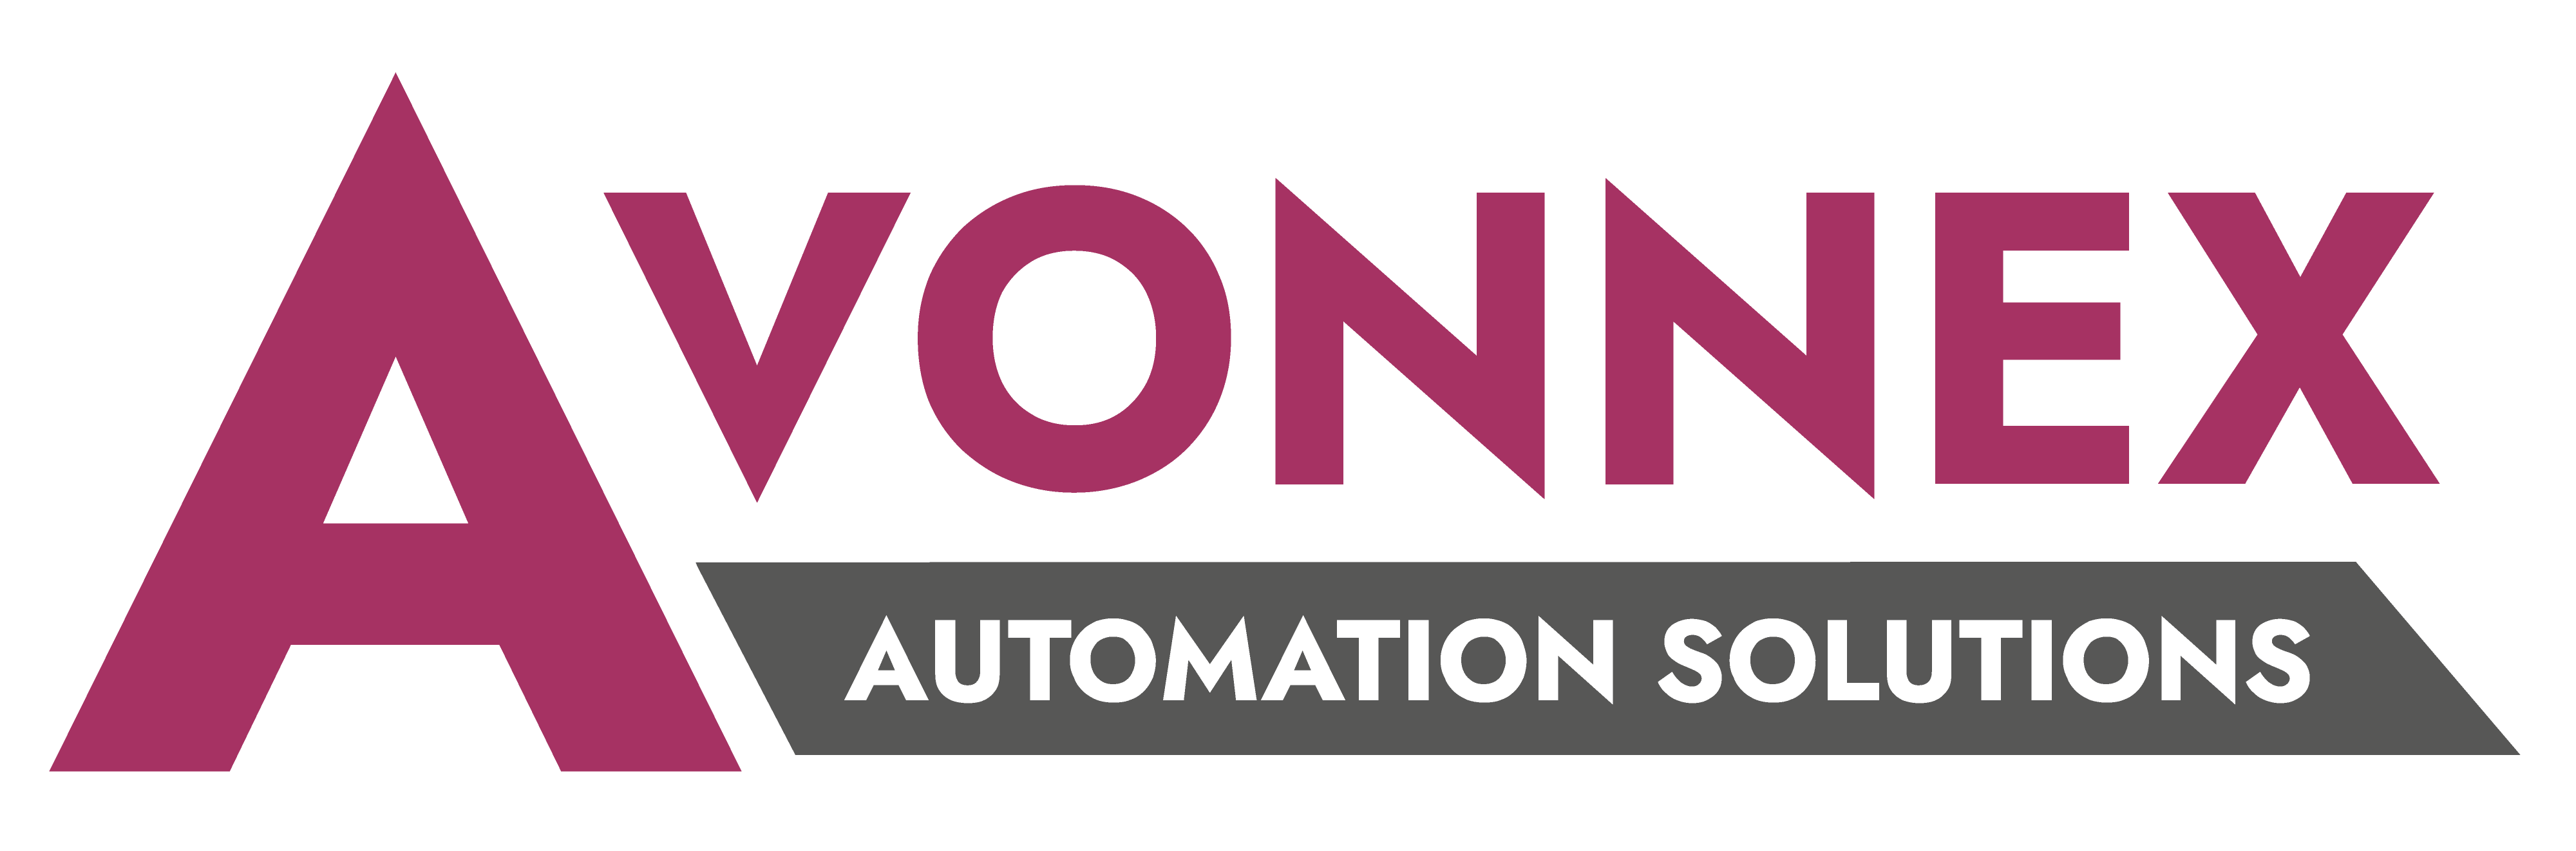 Avonnex Integration available with RxWeb